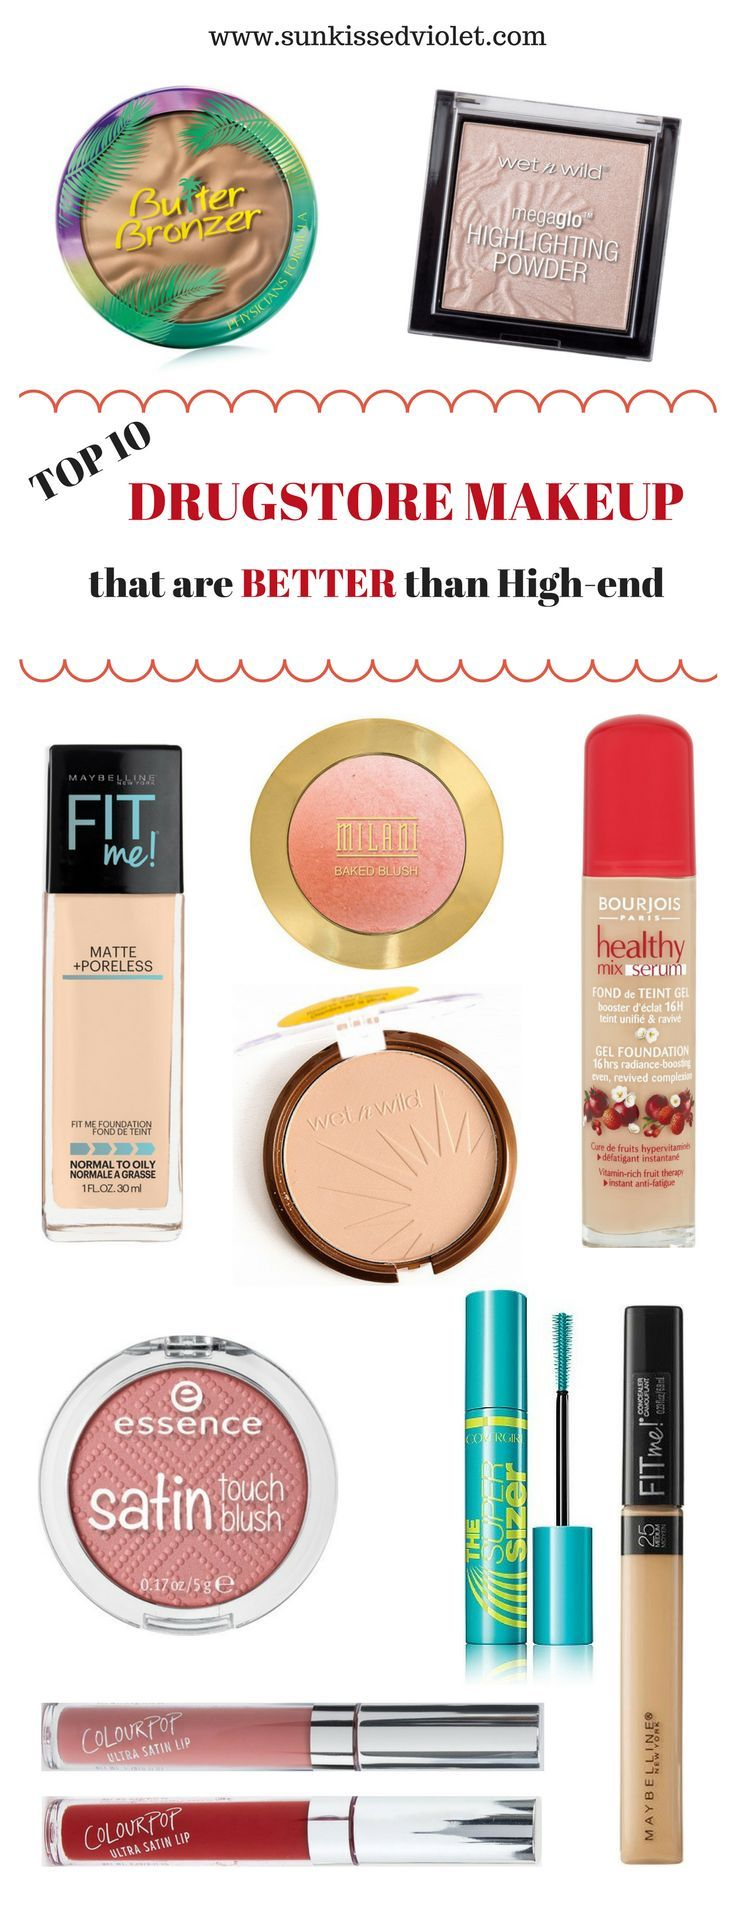 Top 10 Drugstore Makeup that are Better than High-end